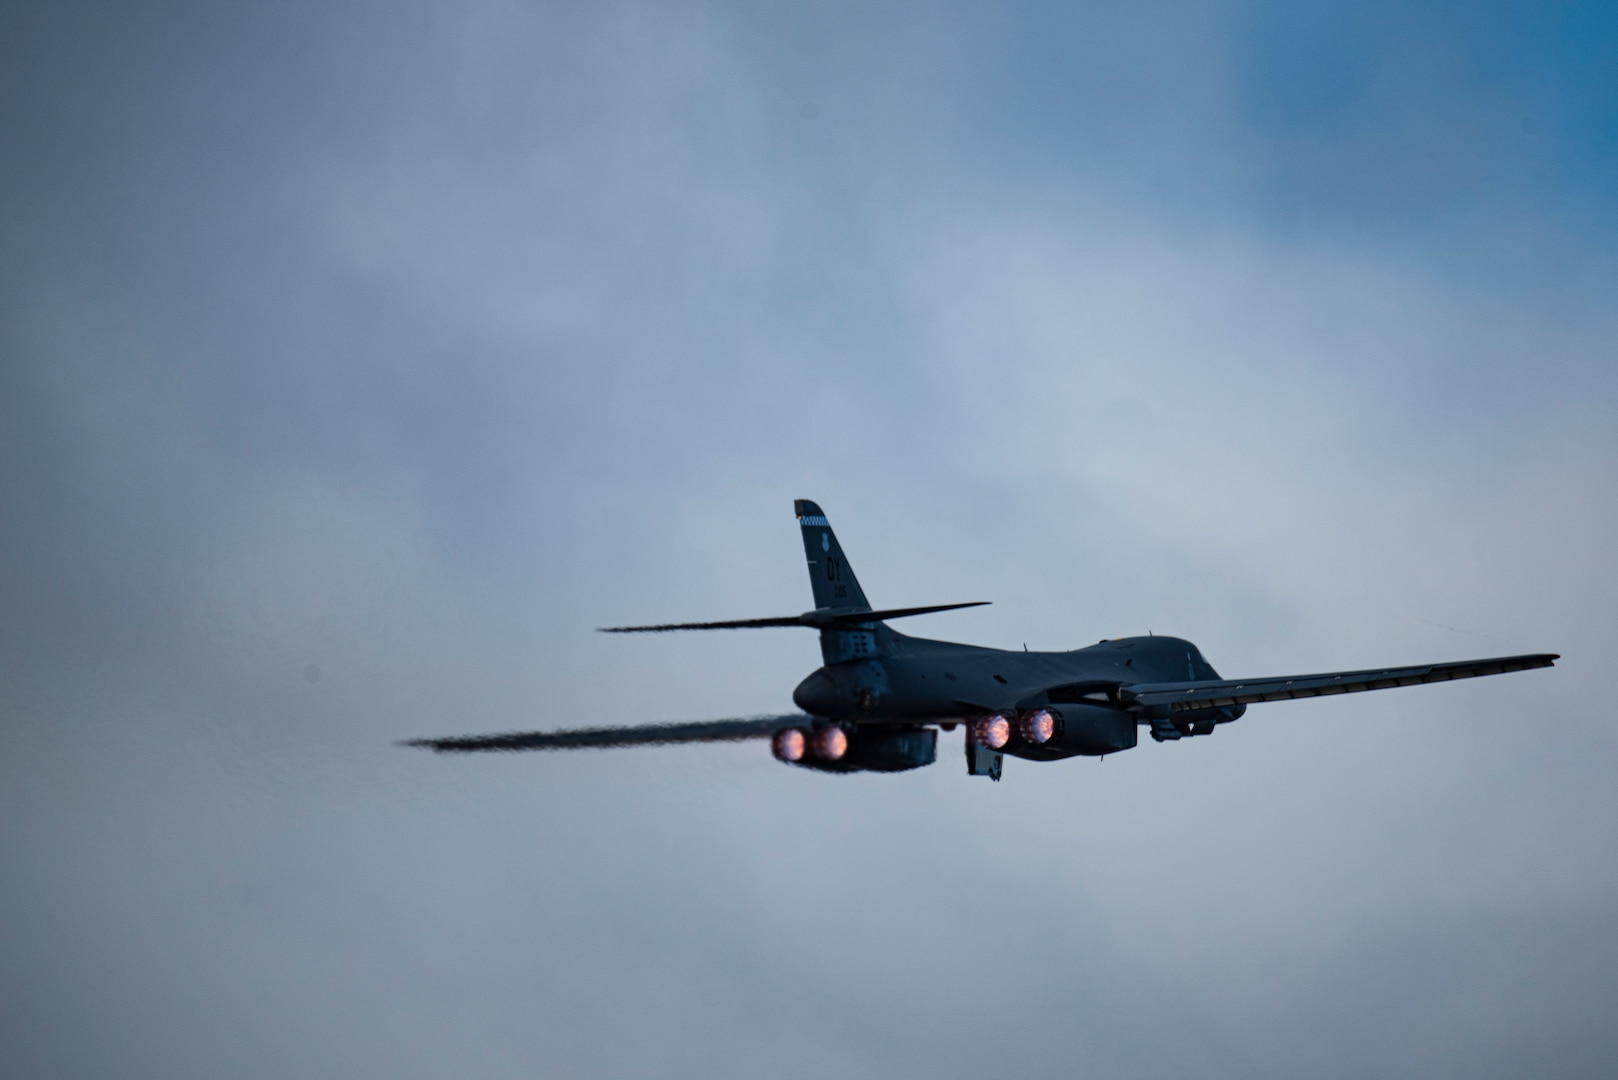 A B-1B Lancer assigned to the 9th Expeditionary Bomb Squadron takes off from Ørland Air Force Station, Norway, Feb. 26, 2021. Strategic bombers routinely participate in Bomber Task Force Europe training and operations to enhance the readiness necessary to respond to any contingency or challenge across the globe. (U.S. Air Force photo Airman 1st Class Colin Hollowell)